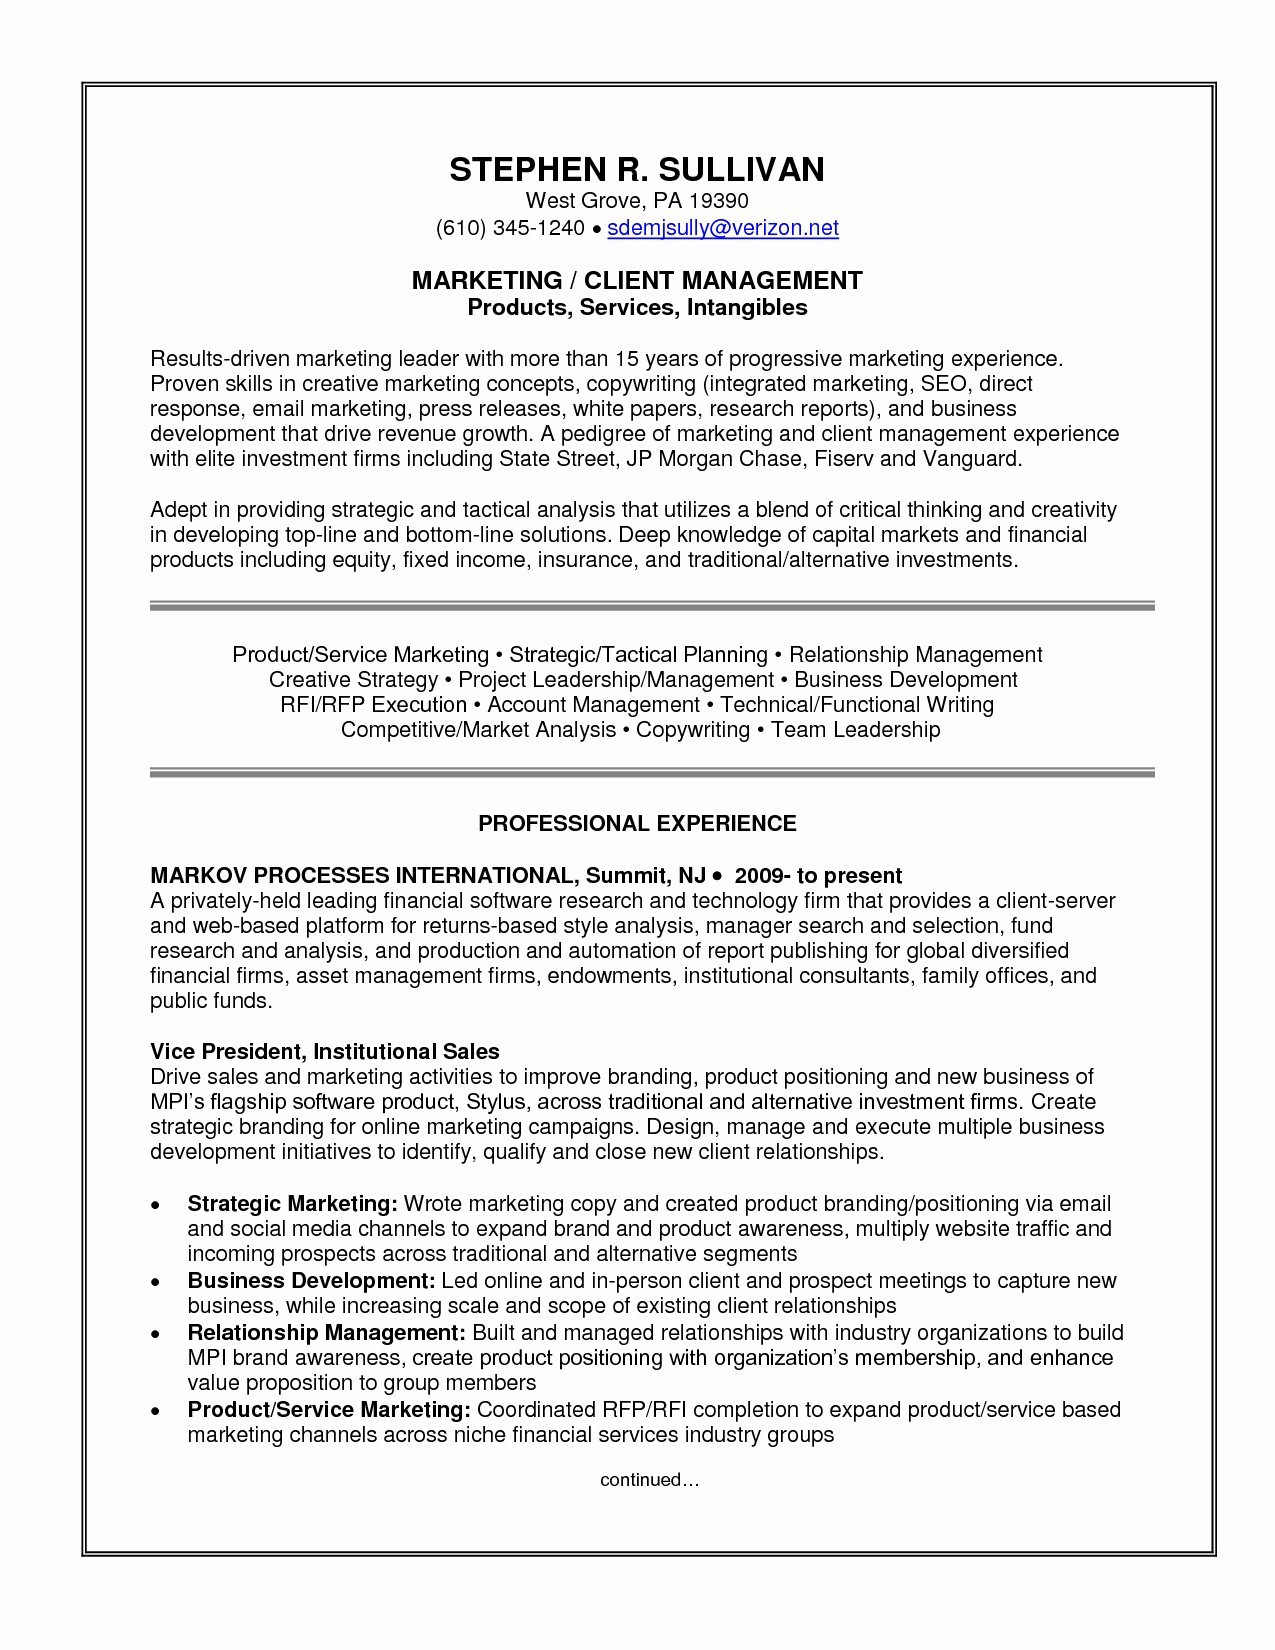 Top Skills for Resume - Experienced Professional Resume Template Best top Resume Template